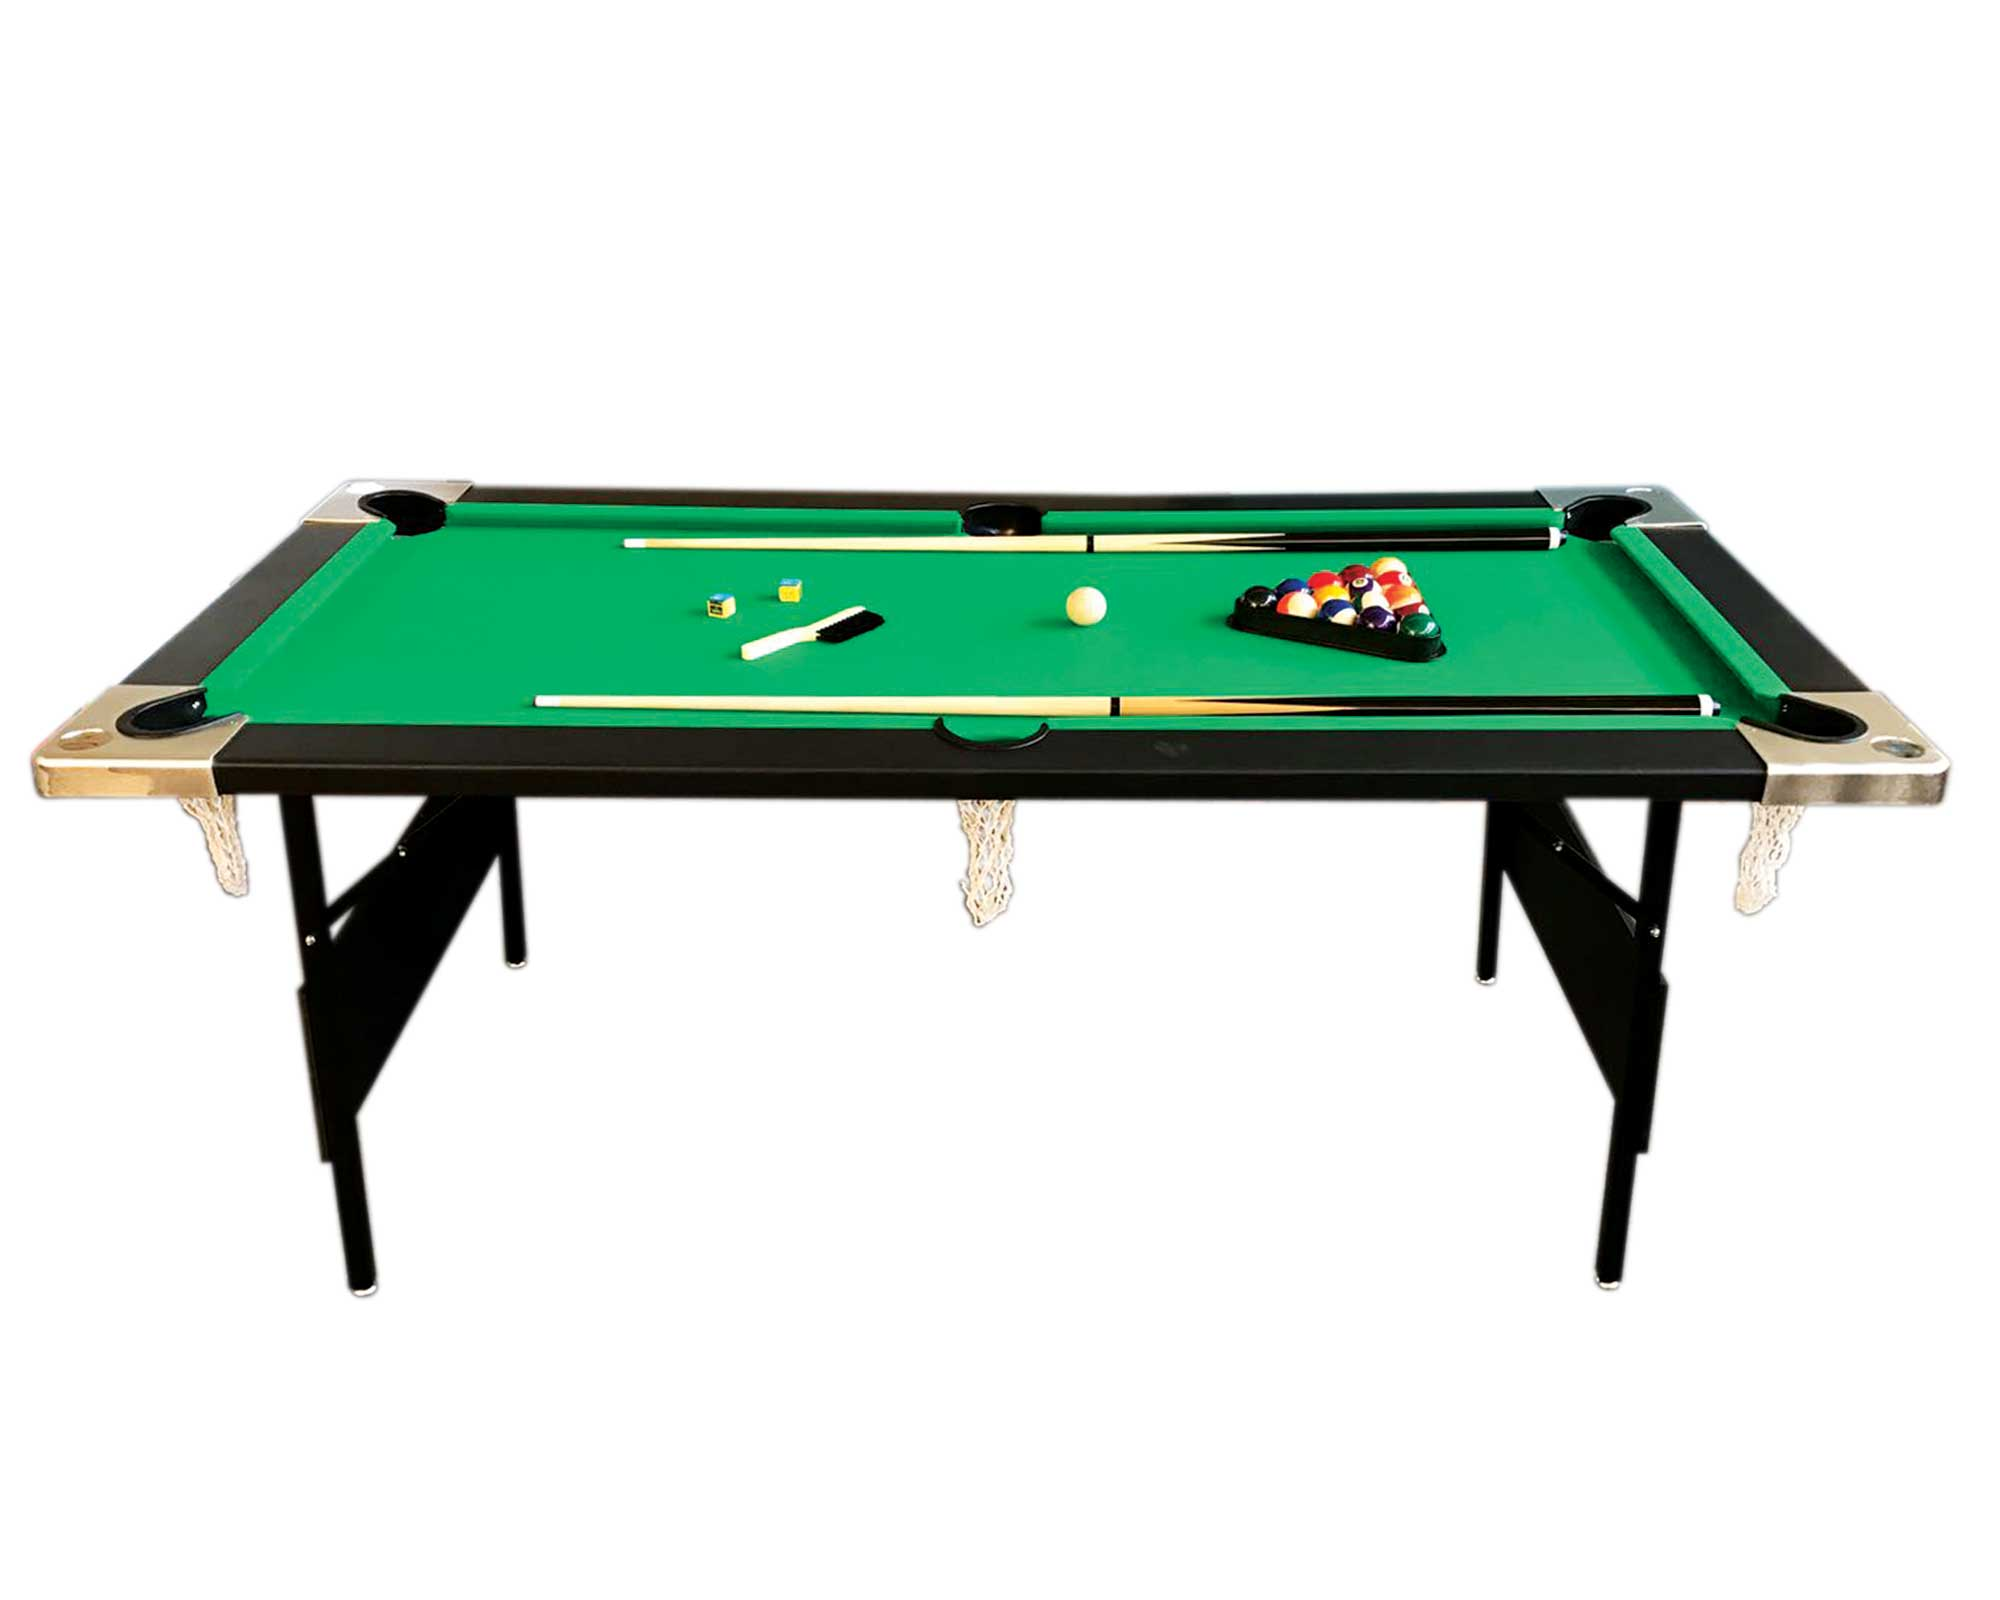 6 39 feet billiard pool table portable snooker accessories for Portable pool